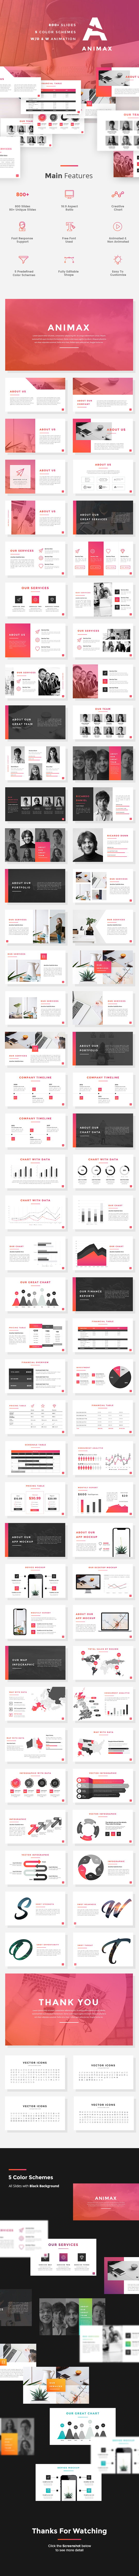 GraphicRiver Animax Finance and Marketing Keynote Template 21160060